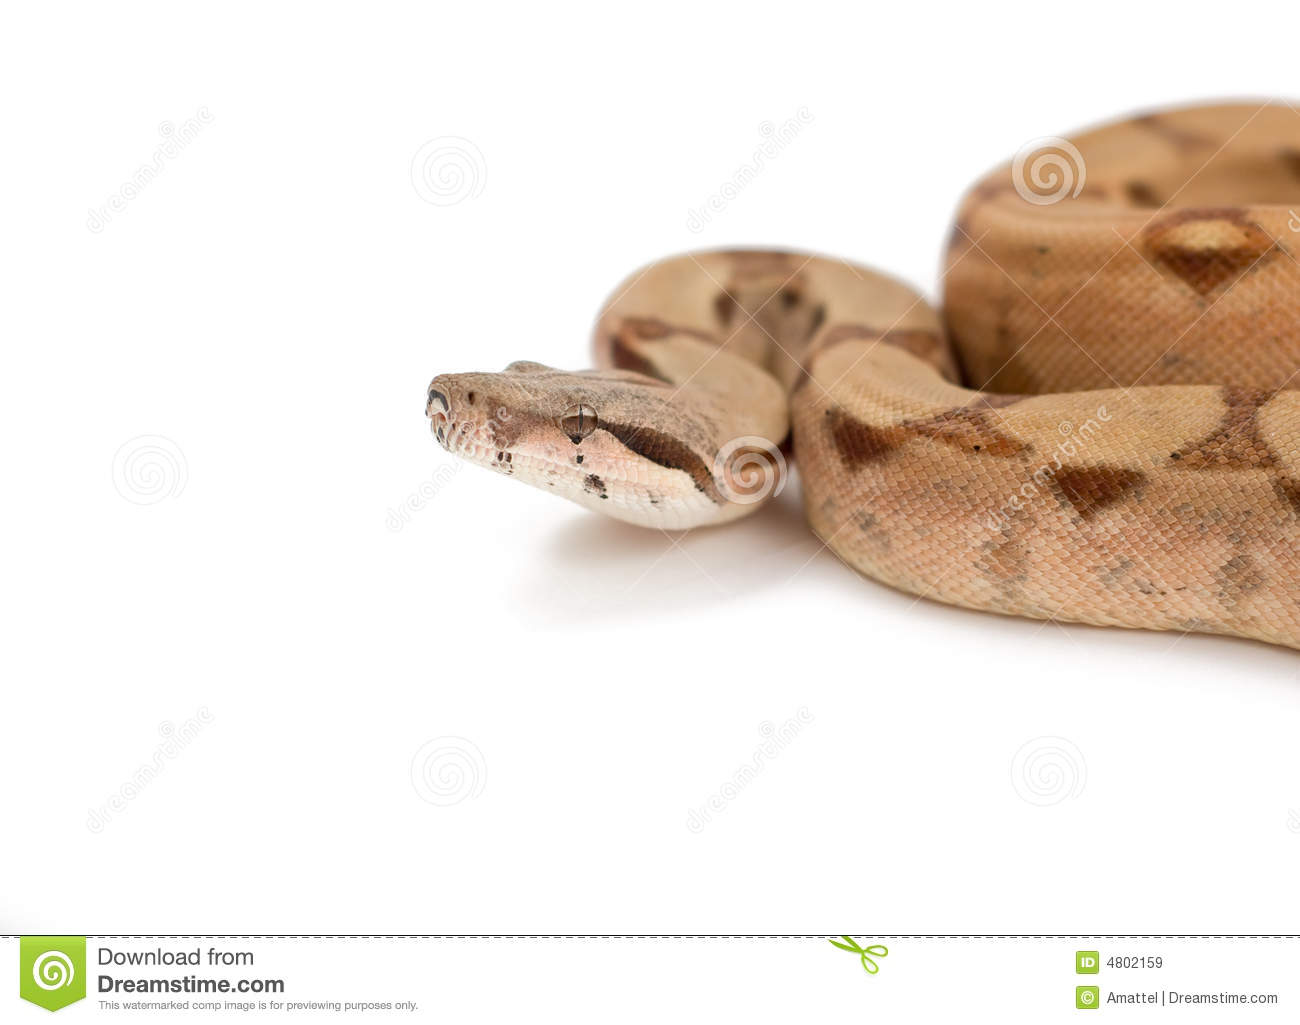 Boa constrictor isolated on white